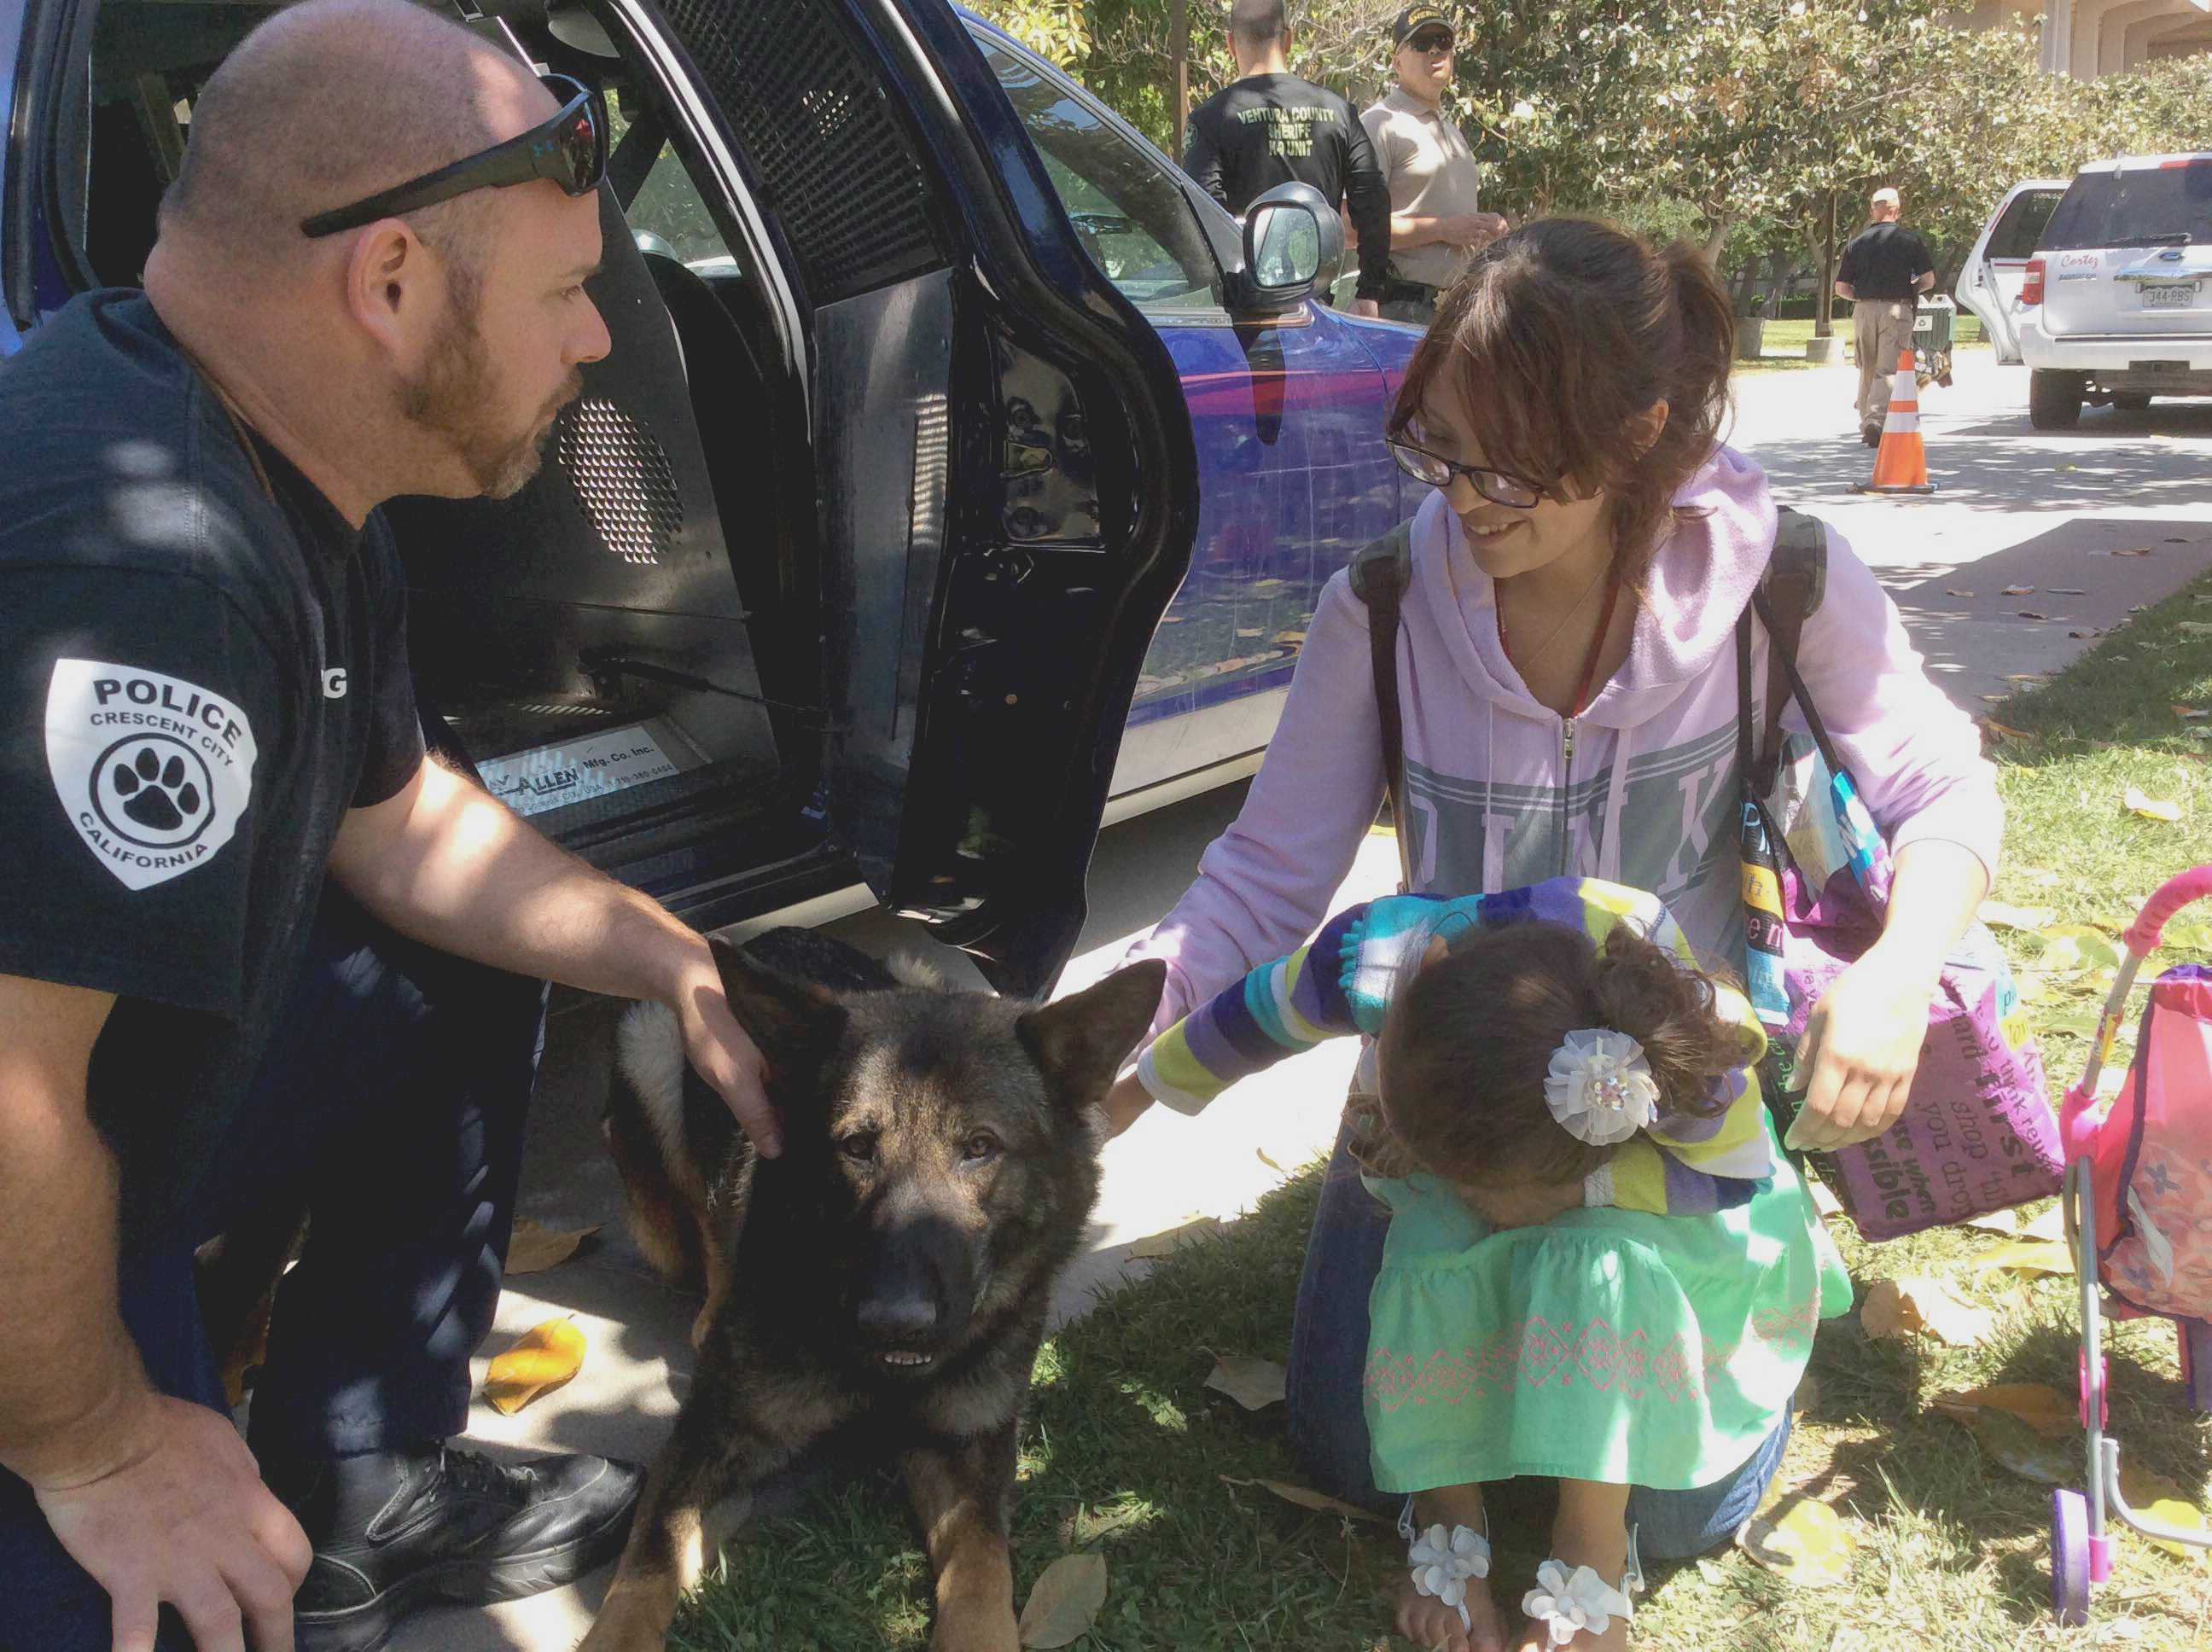 CSUN student Joselyn Cano and her daughter, Emily, 3, pet Django, belonging to Crescent City Police Department officer Aaron King. Photo credit: Michael Arvizu